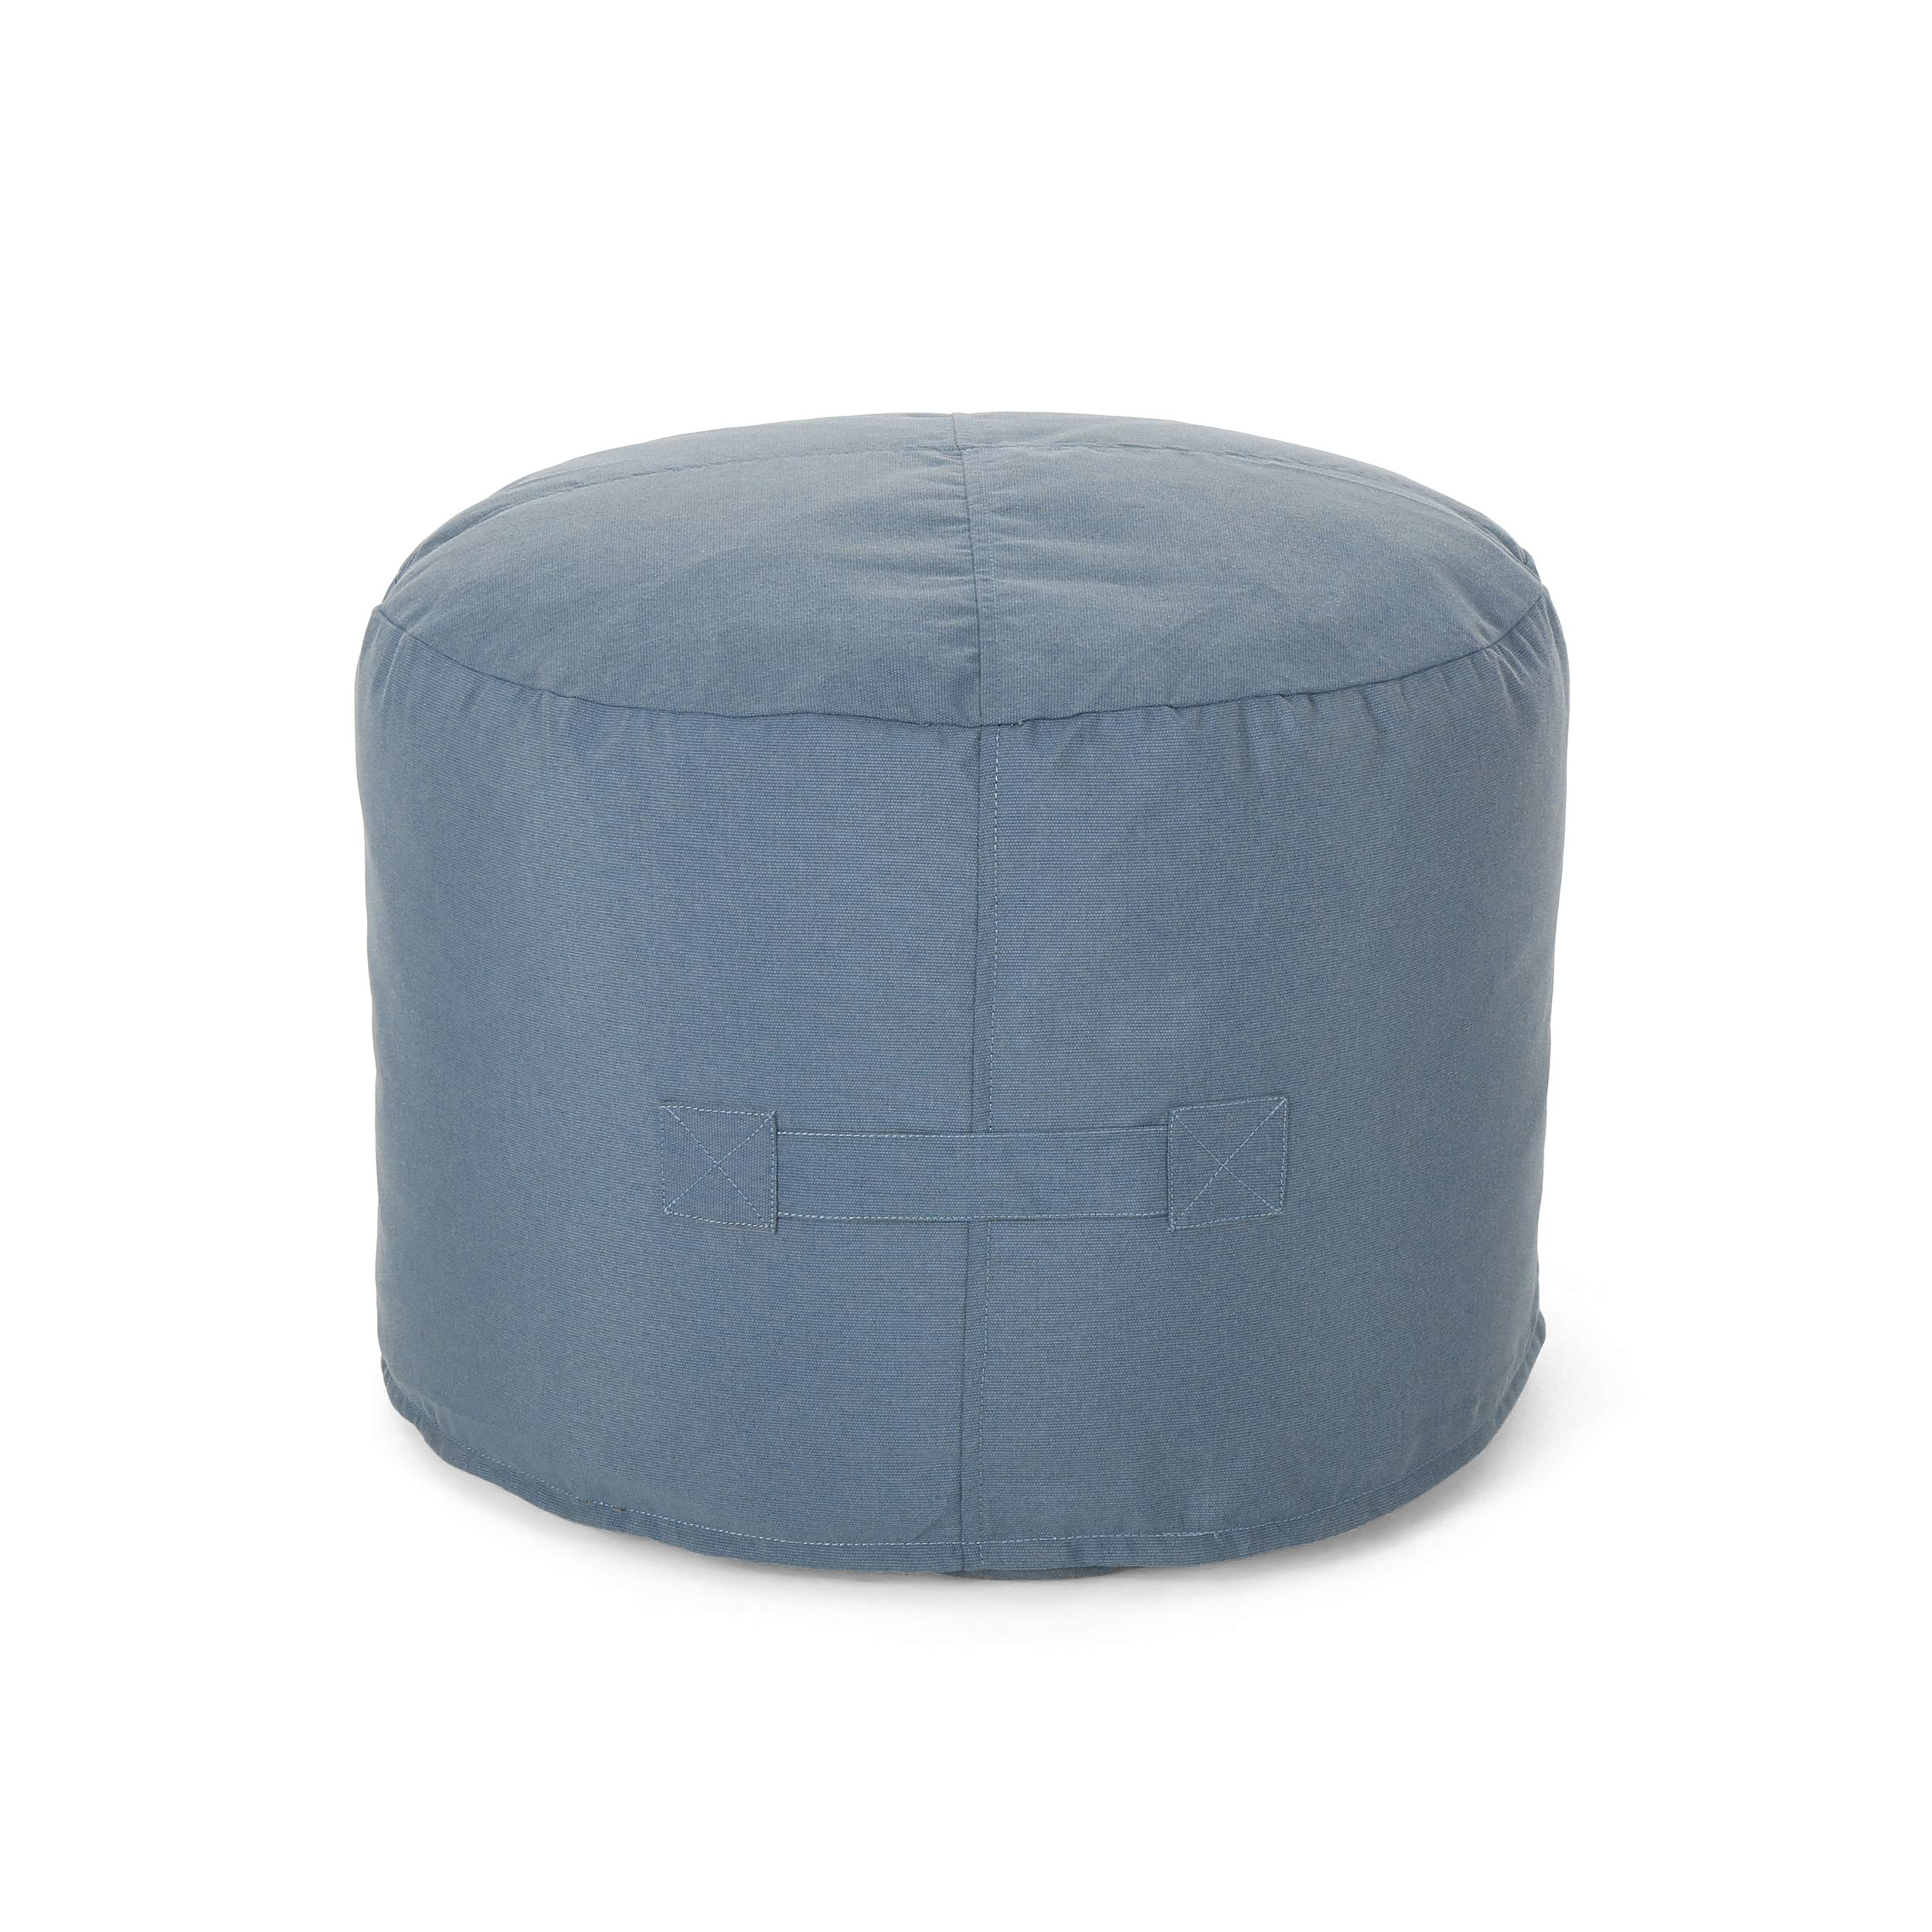 Great Deal Furniture Crystal Cay Outdoor Water Resistant 2' Ottoman Pouf, Blue